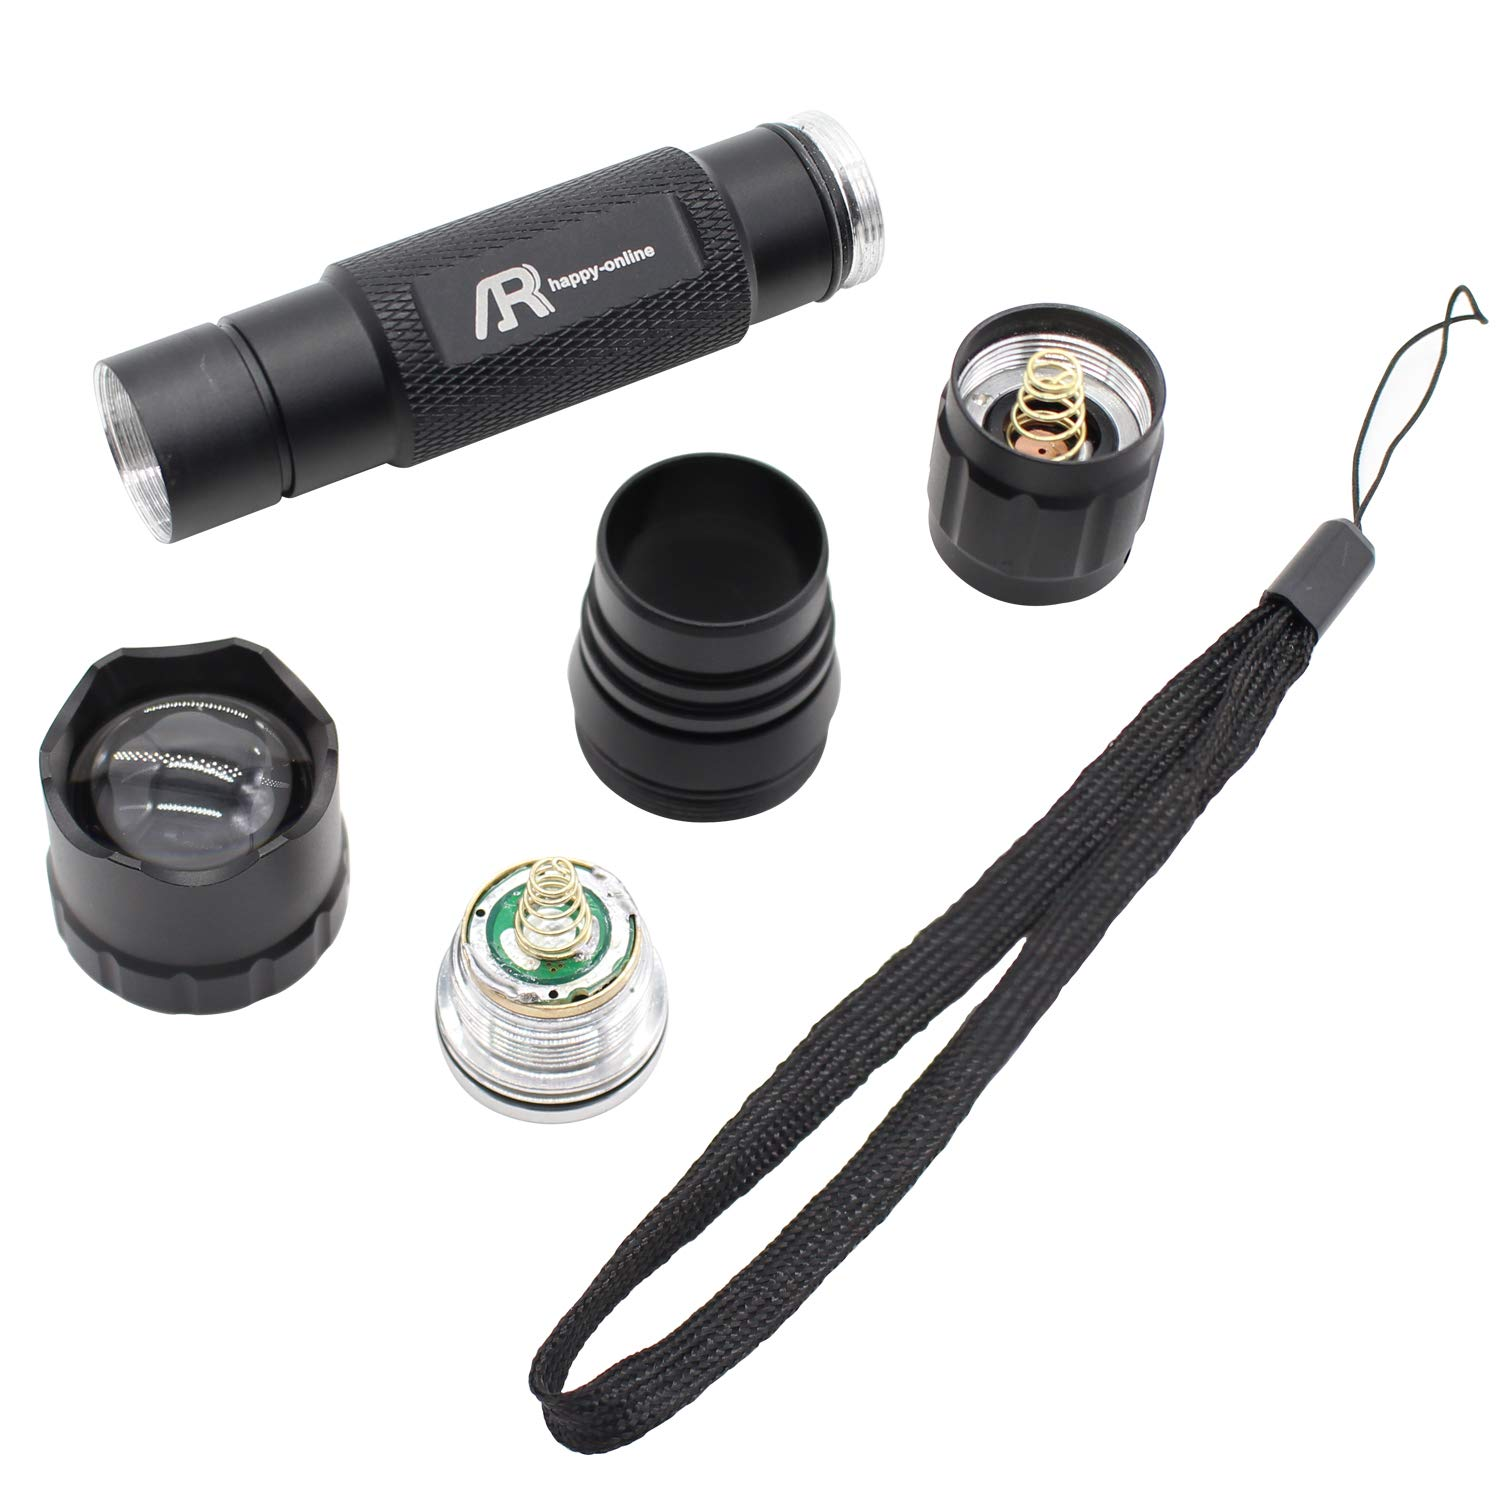 Astronomy and Emergency Water Resistant AR happy online 2 Pack Red Light LED Flashlight Night Vision Single Mode 620nm-630nm Adjustable Focus Red Light for Camping Zoomable Hunting Hiking